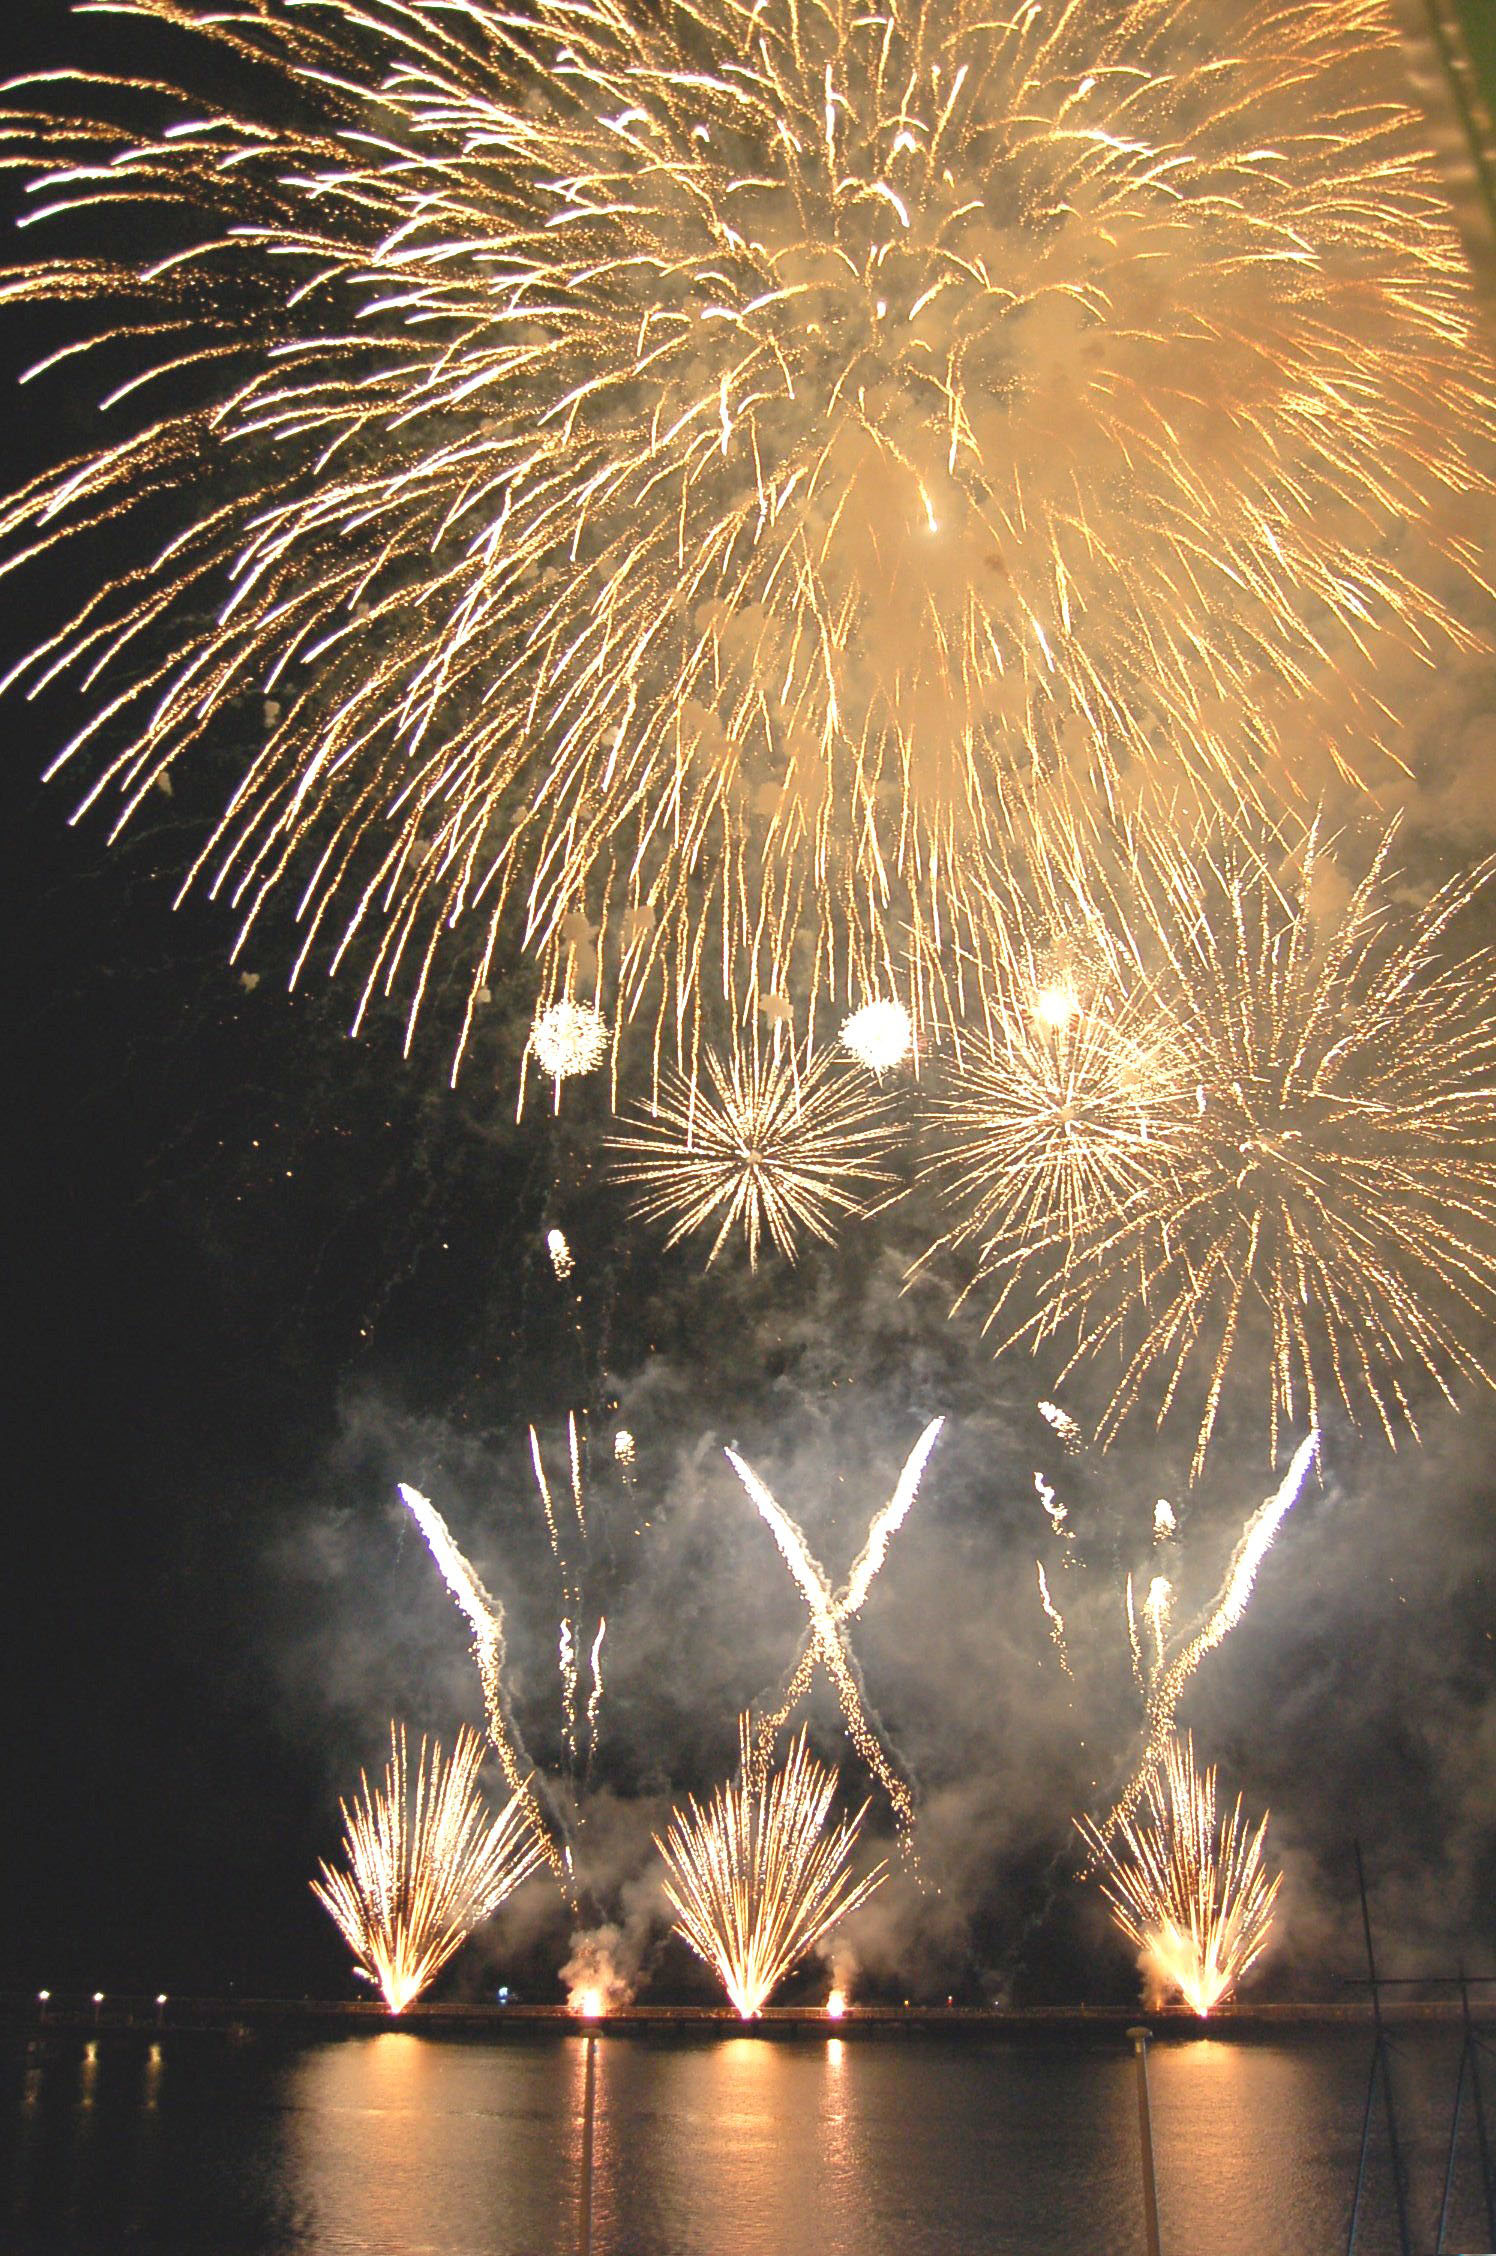 One last bang: Fireworks season draws to a close with the World Fireworks Competition.